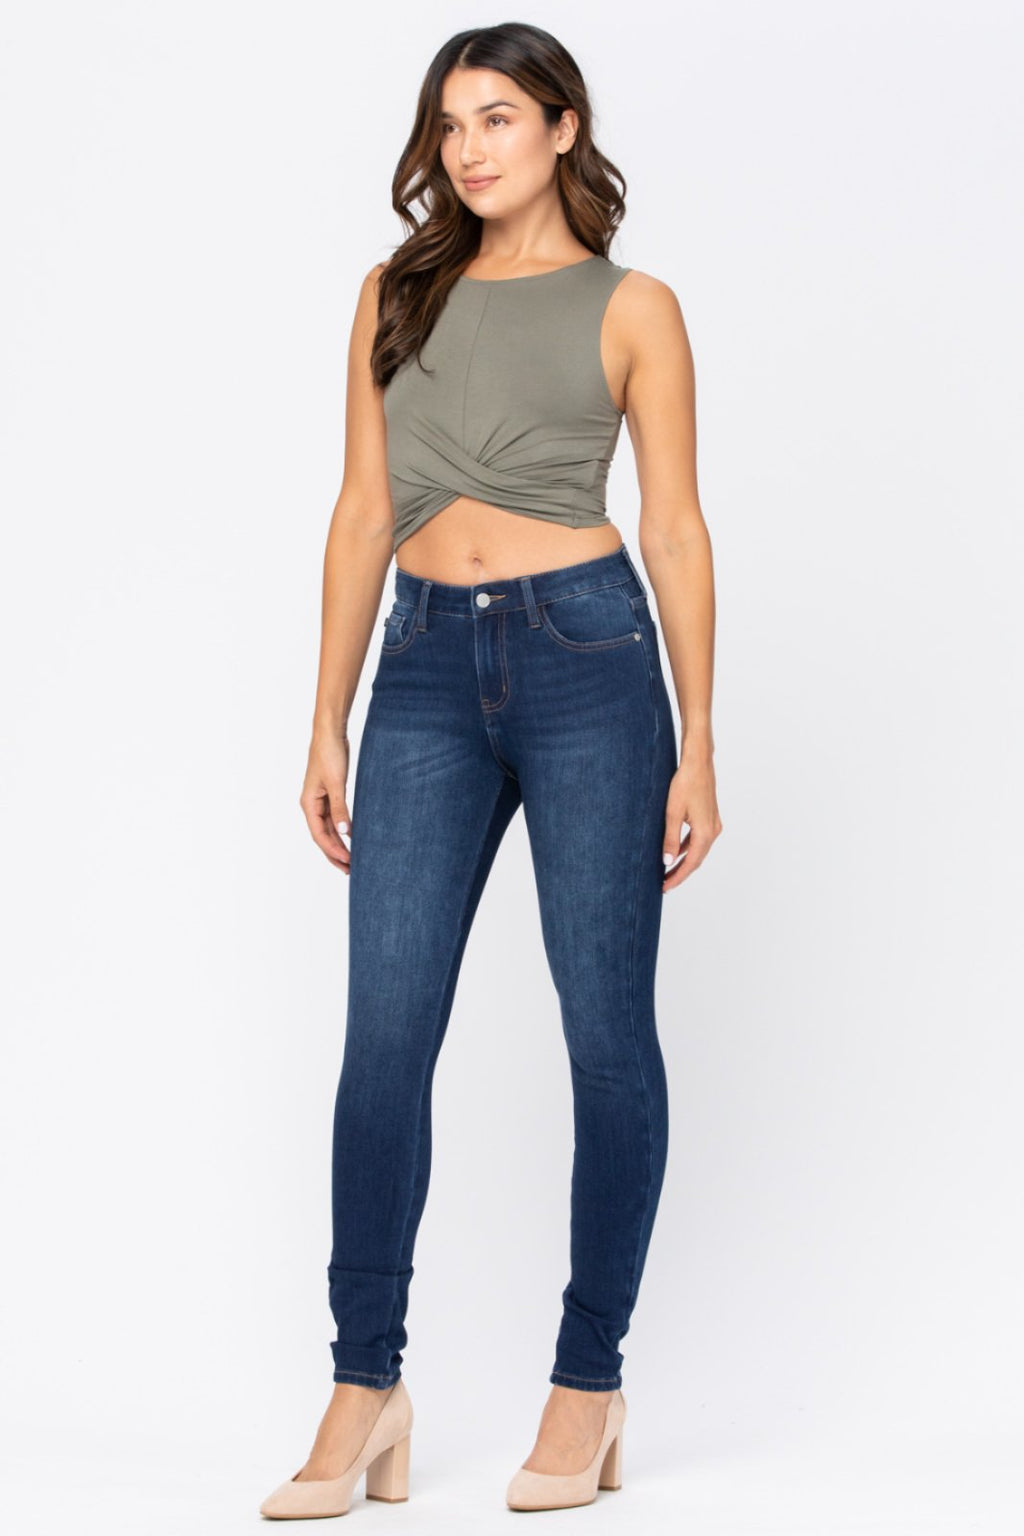 Judy Blue Dark Wash Thermal Jeans